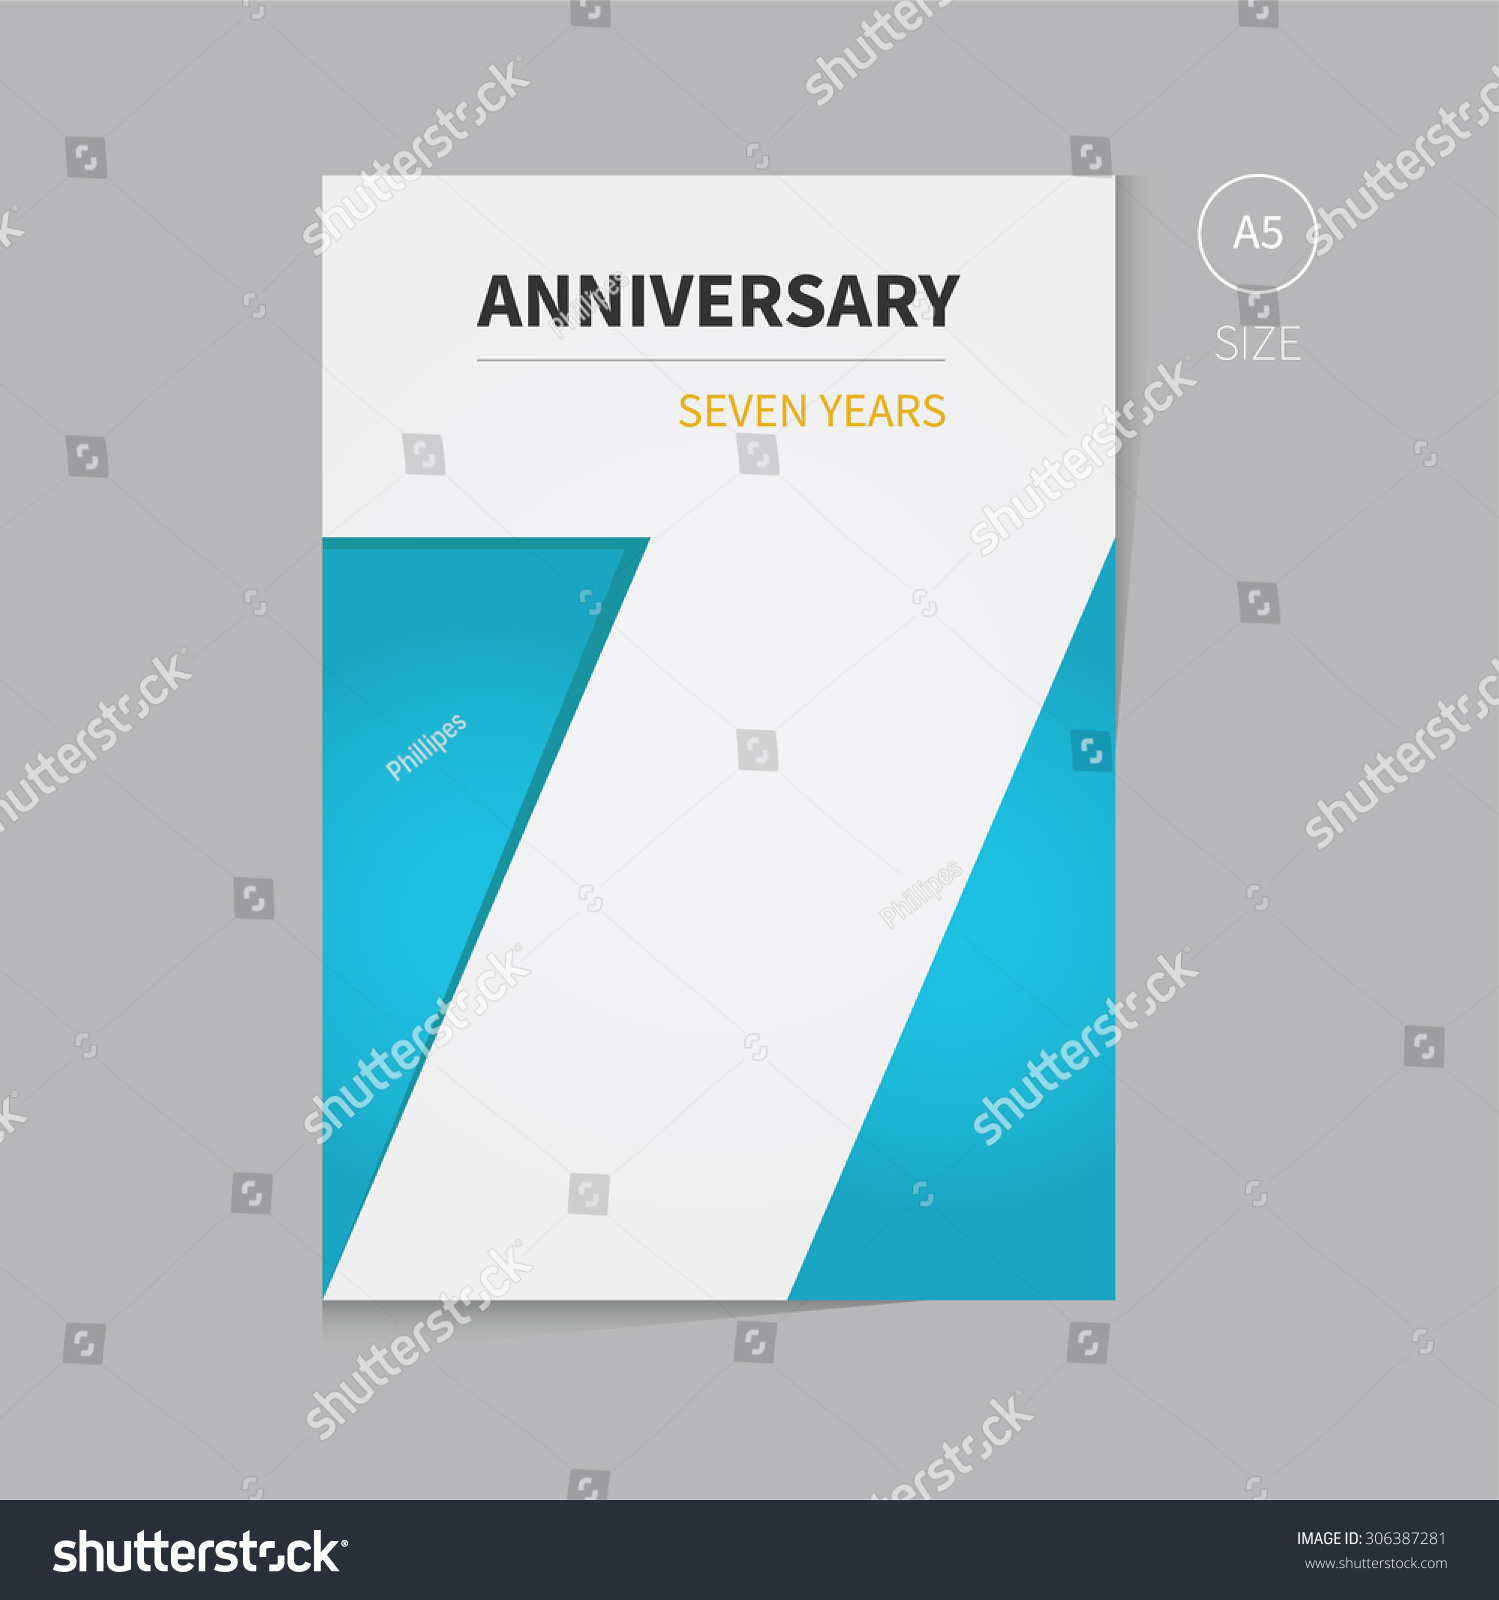 vector anniversary brochure template design clean stock vector vector anniversary brochure template design clean and modern flyer for business presentation anniversary event